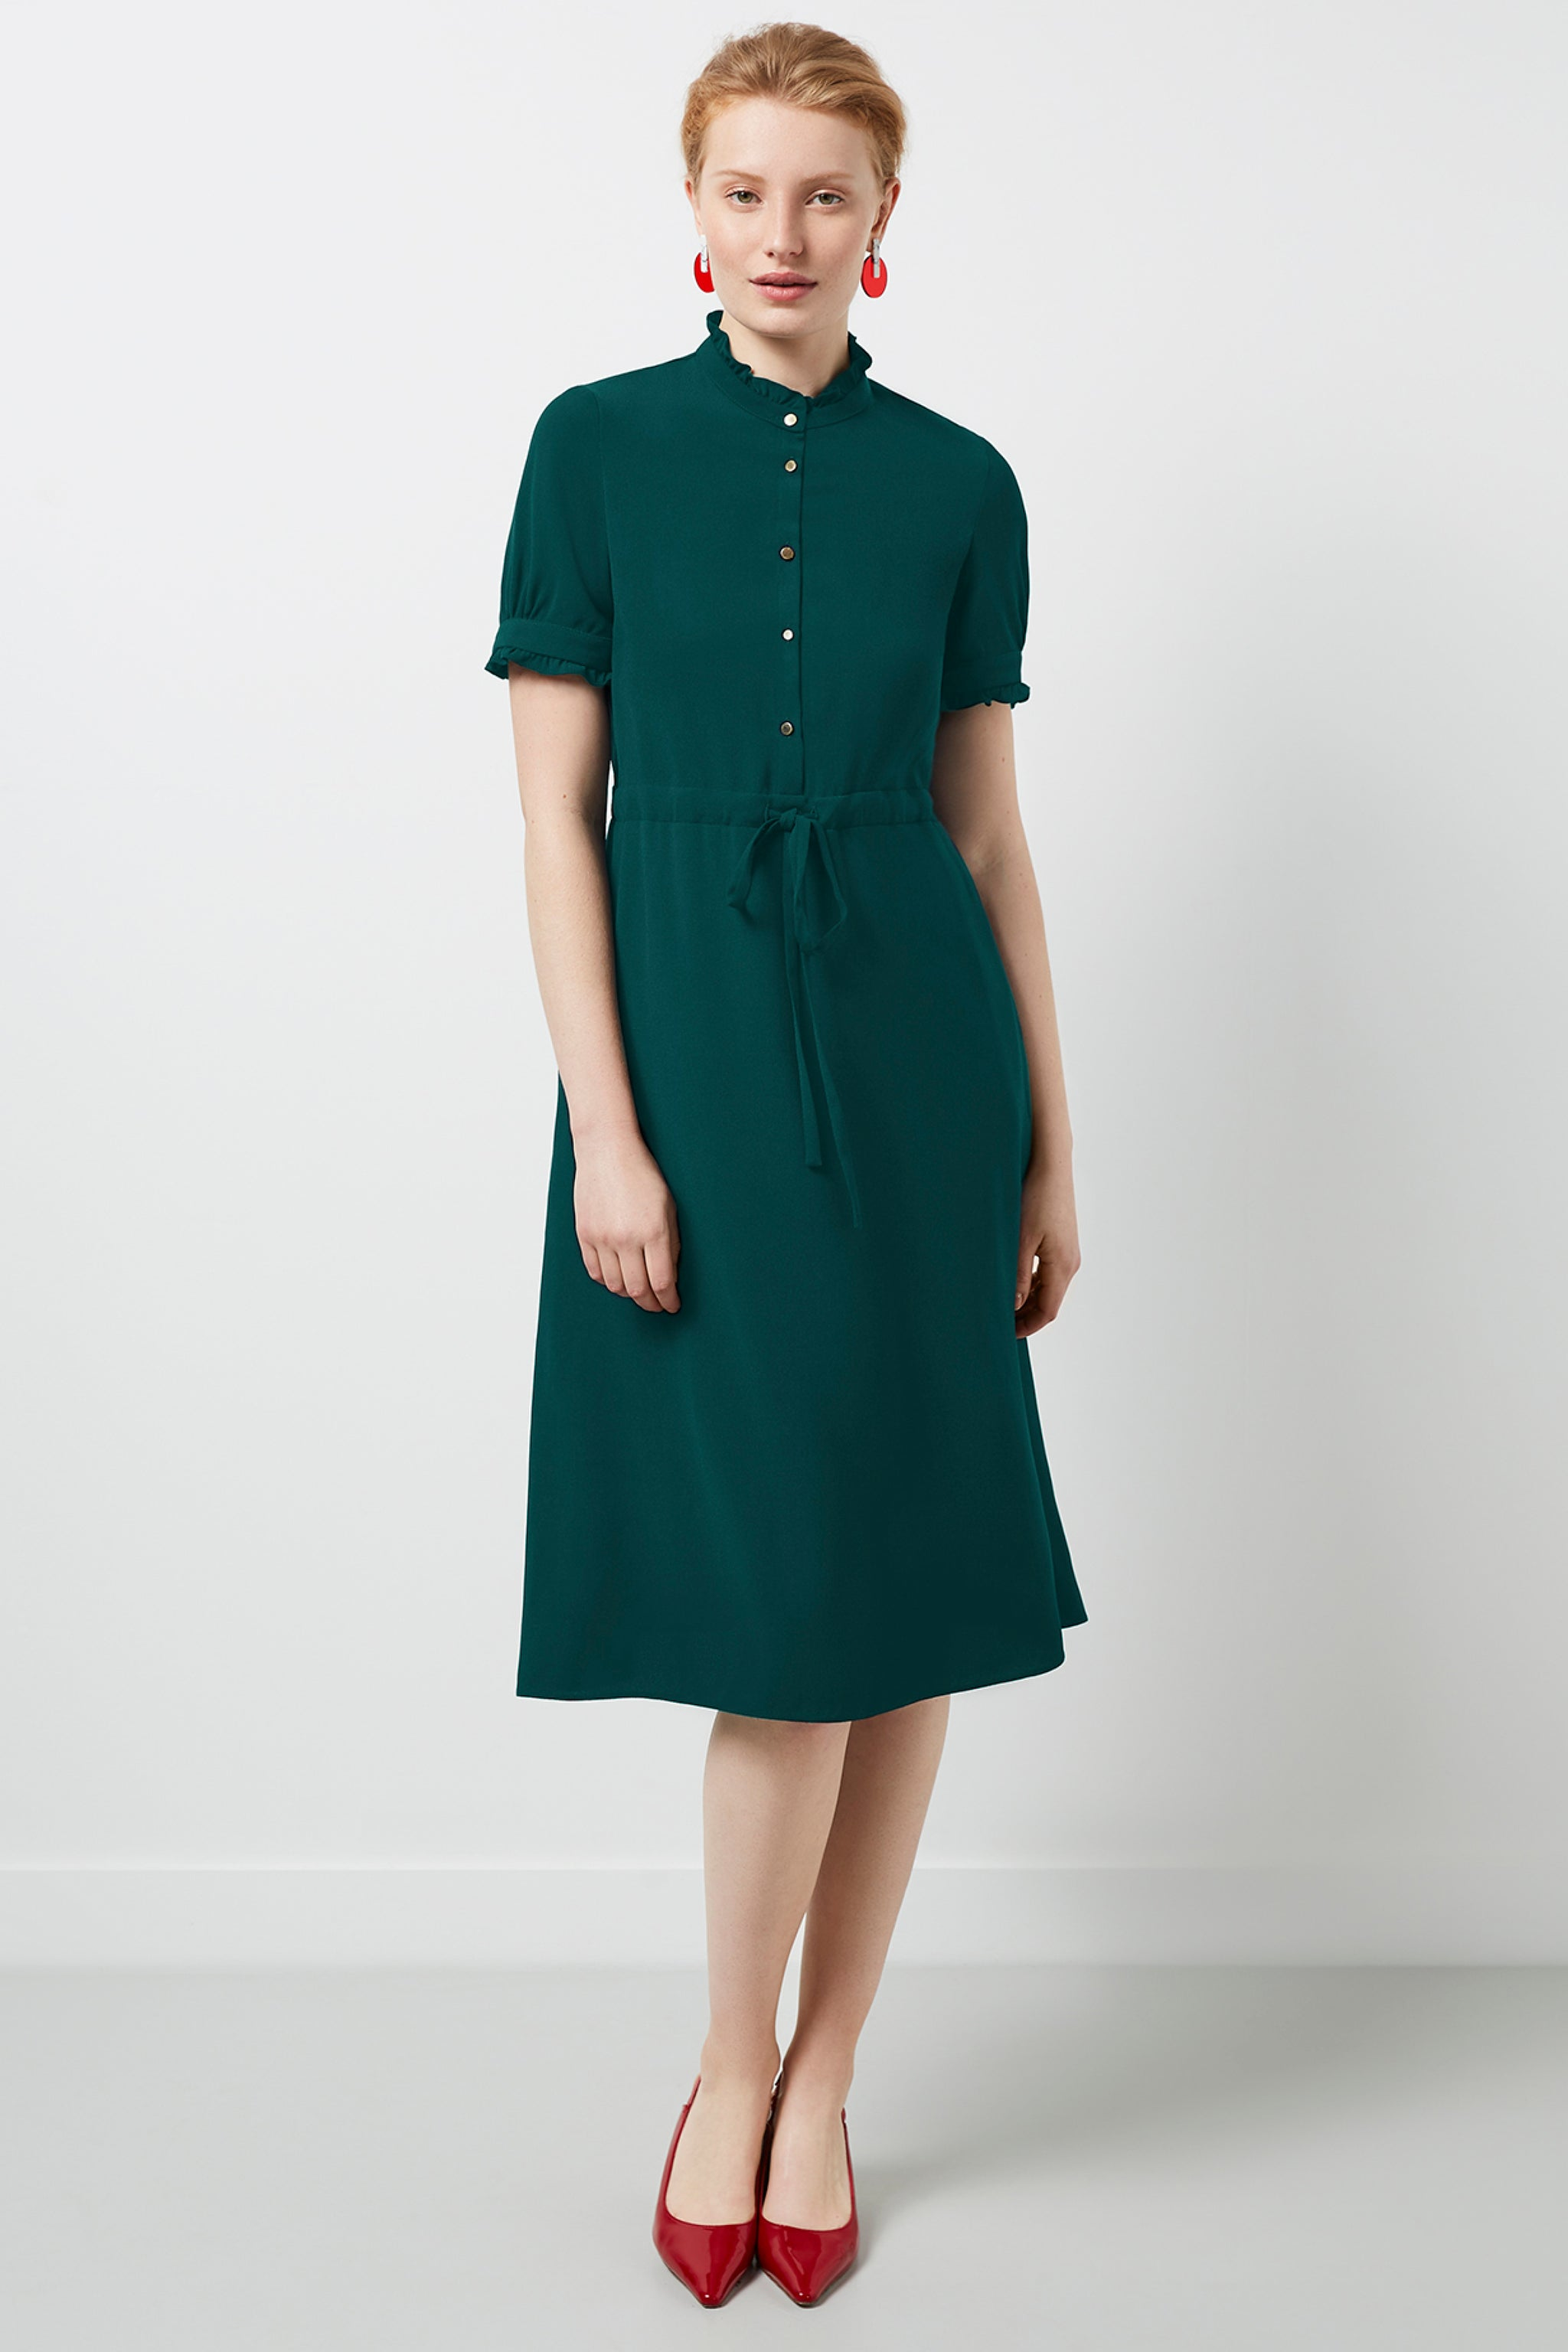 Canterbury Green Dress